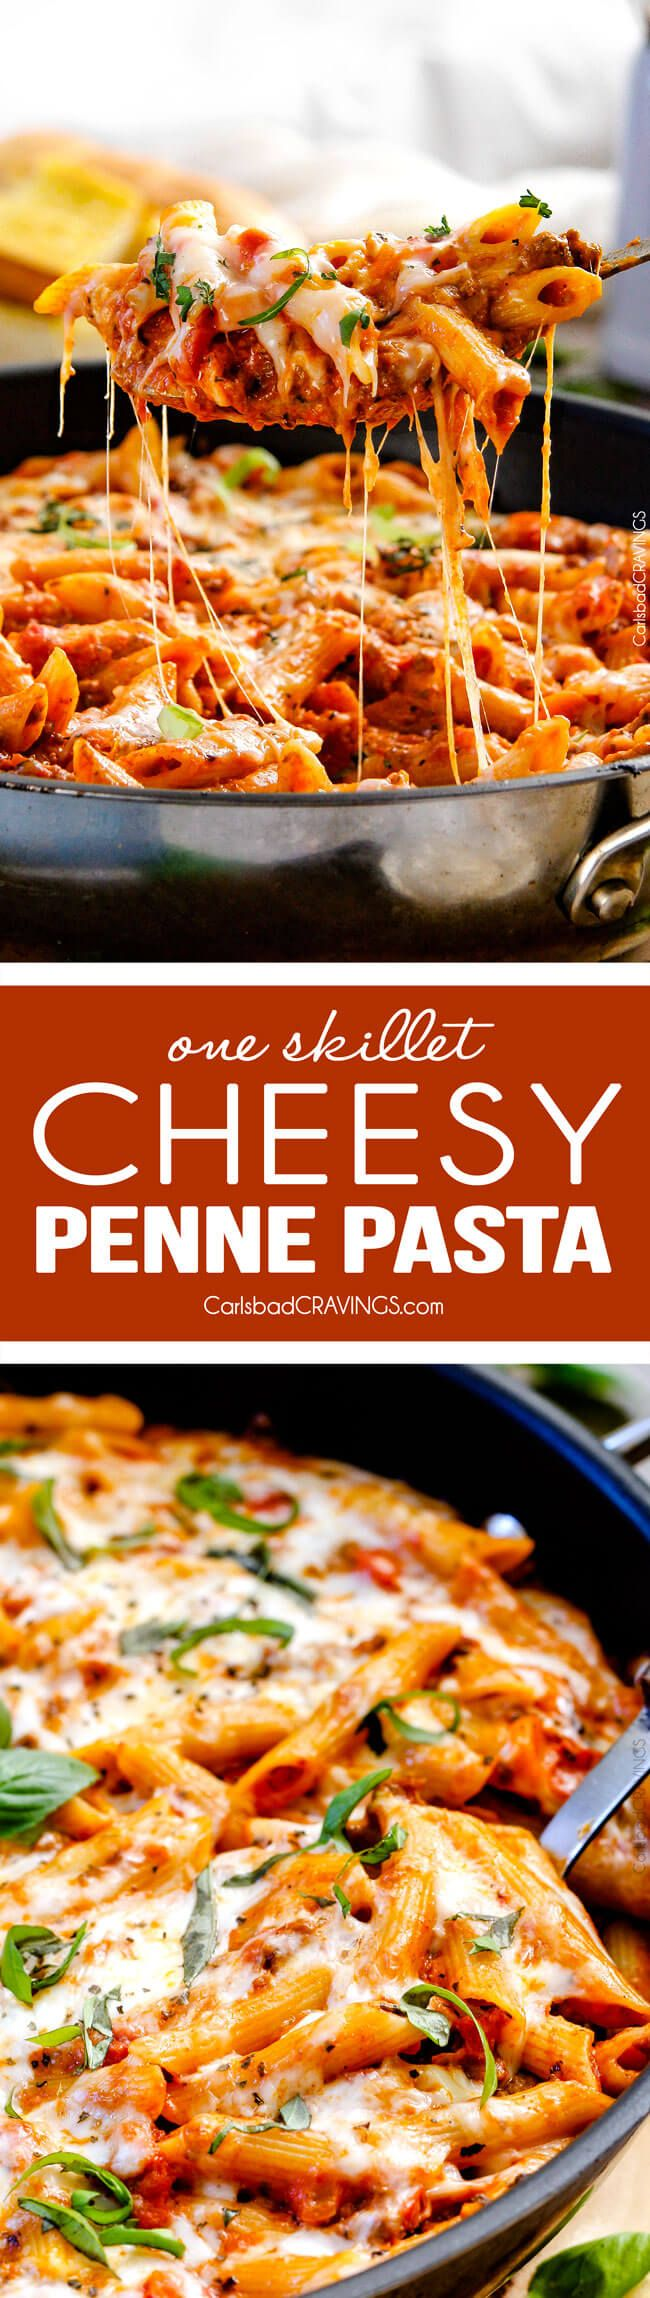 One Skillet Cheesy Penne - the best homemade ragu sauce simmered right with the pasta then loaded with cheese! My family begs me to make this weekly! via Carlsbad Cravings